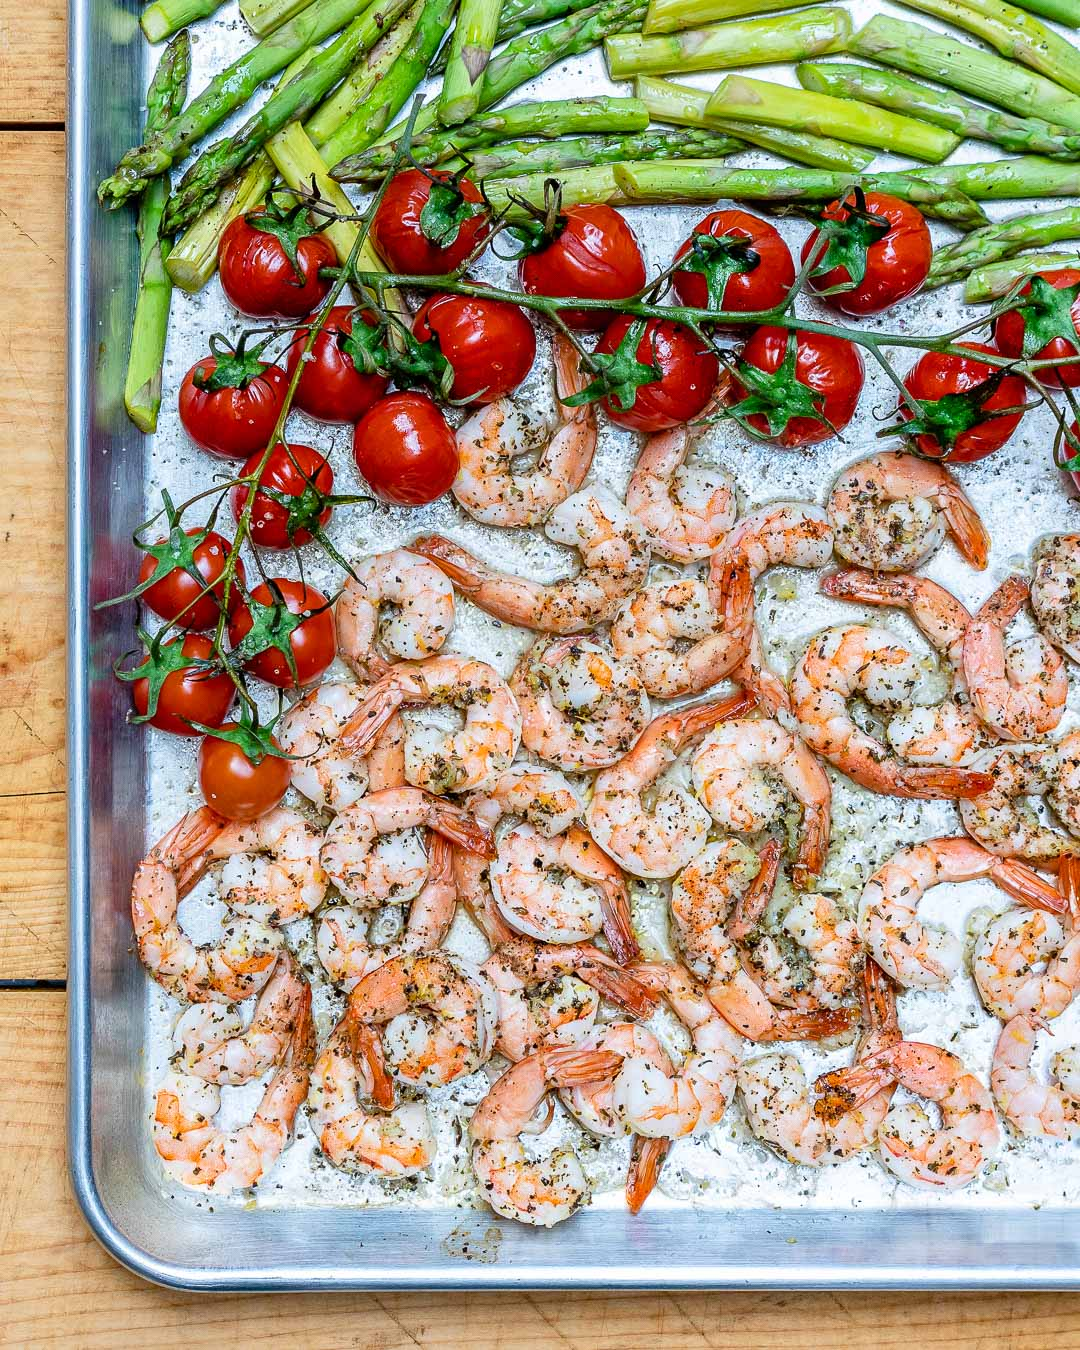 Baked Lemon Garlic Butter Shrimp And Asparagus - Recipe Video